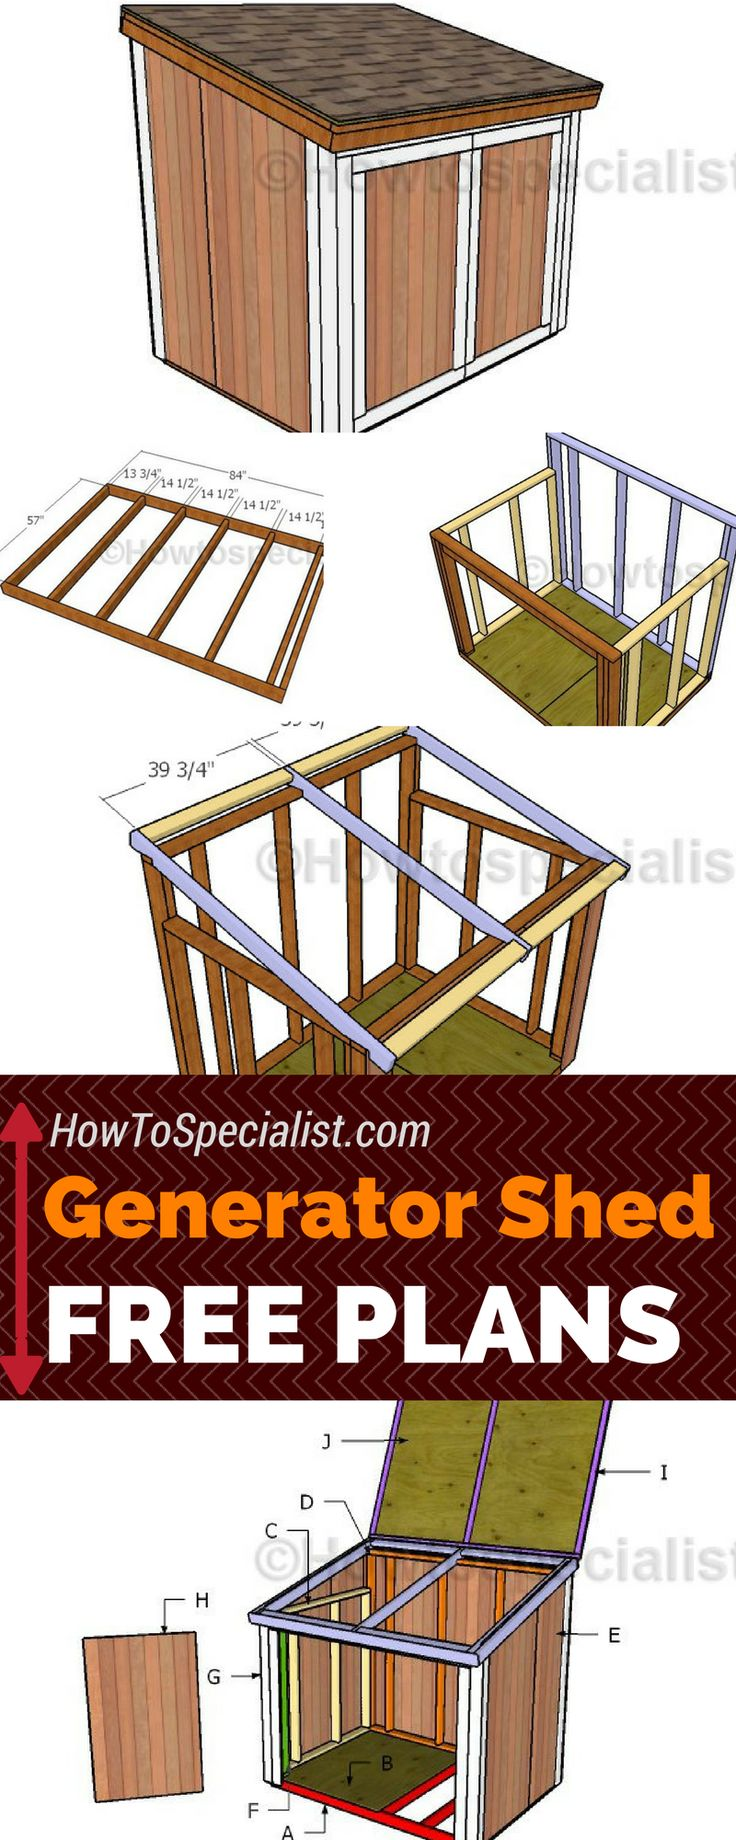 Learn how to build a generator shed using these free and step by step plans! These generator shed plans will show you anything you need to know about framing a 5x7 enclosure with double front doors and a top lid! #shed #generator howtospecialist.com